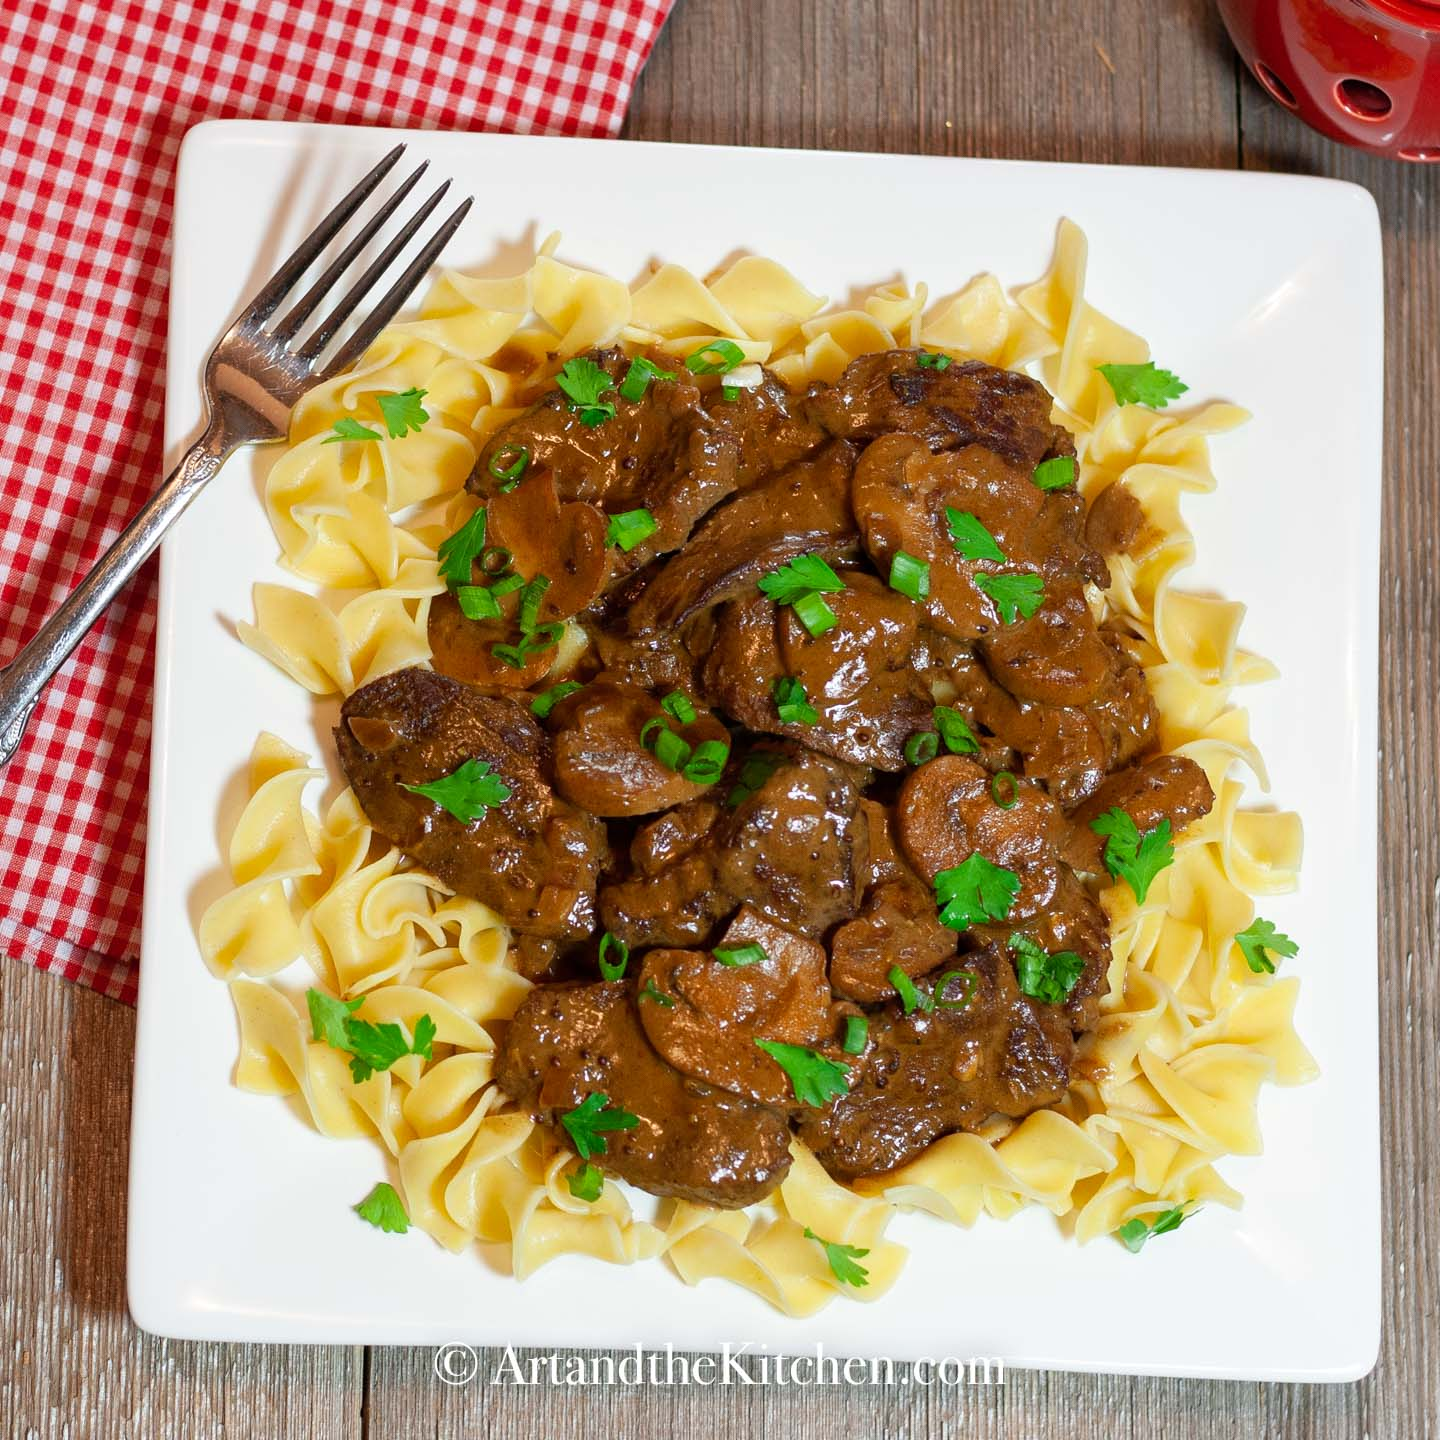 White square plate filled with beef stroganoff on a bed of broad noodles.